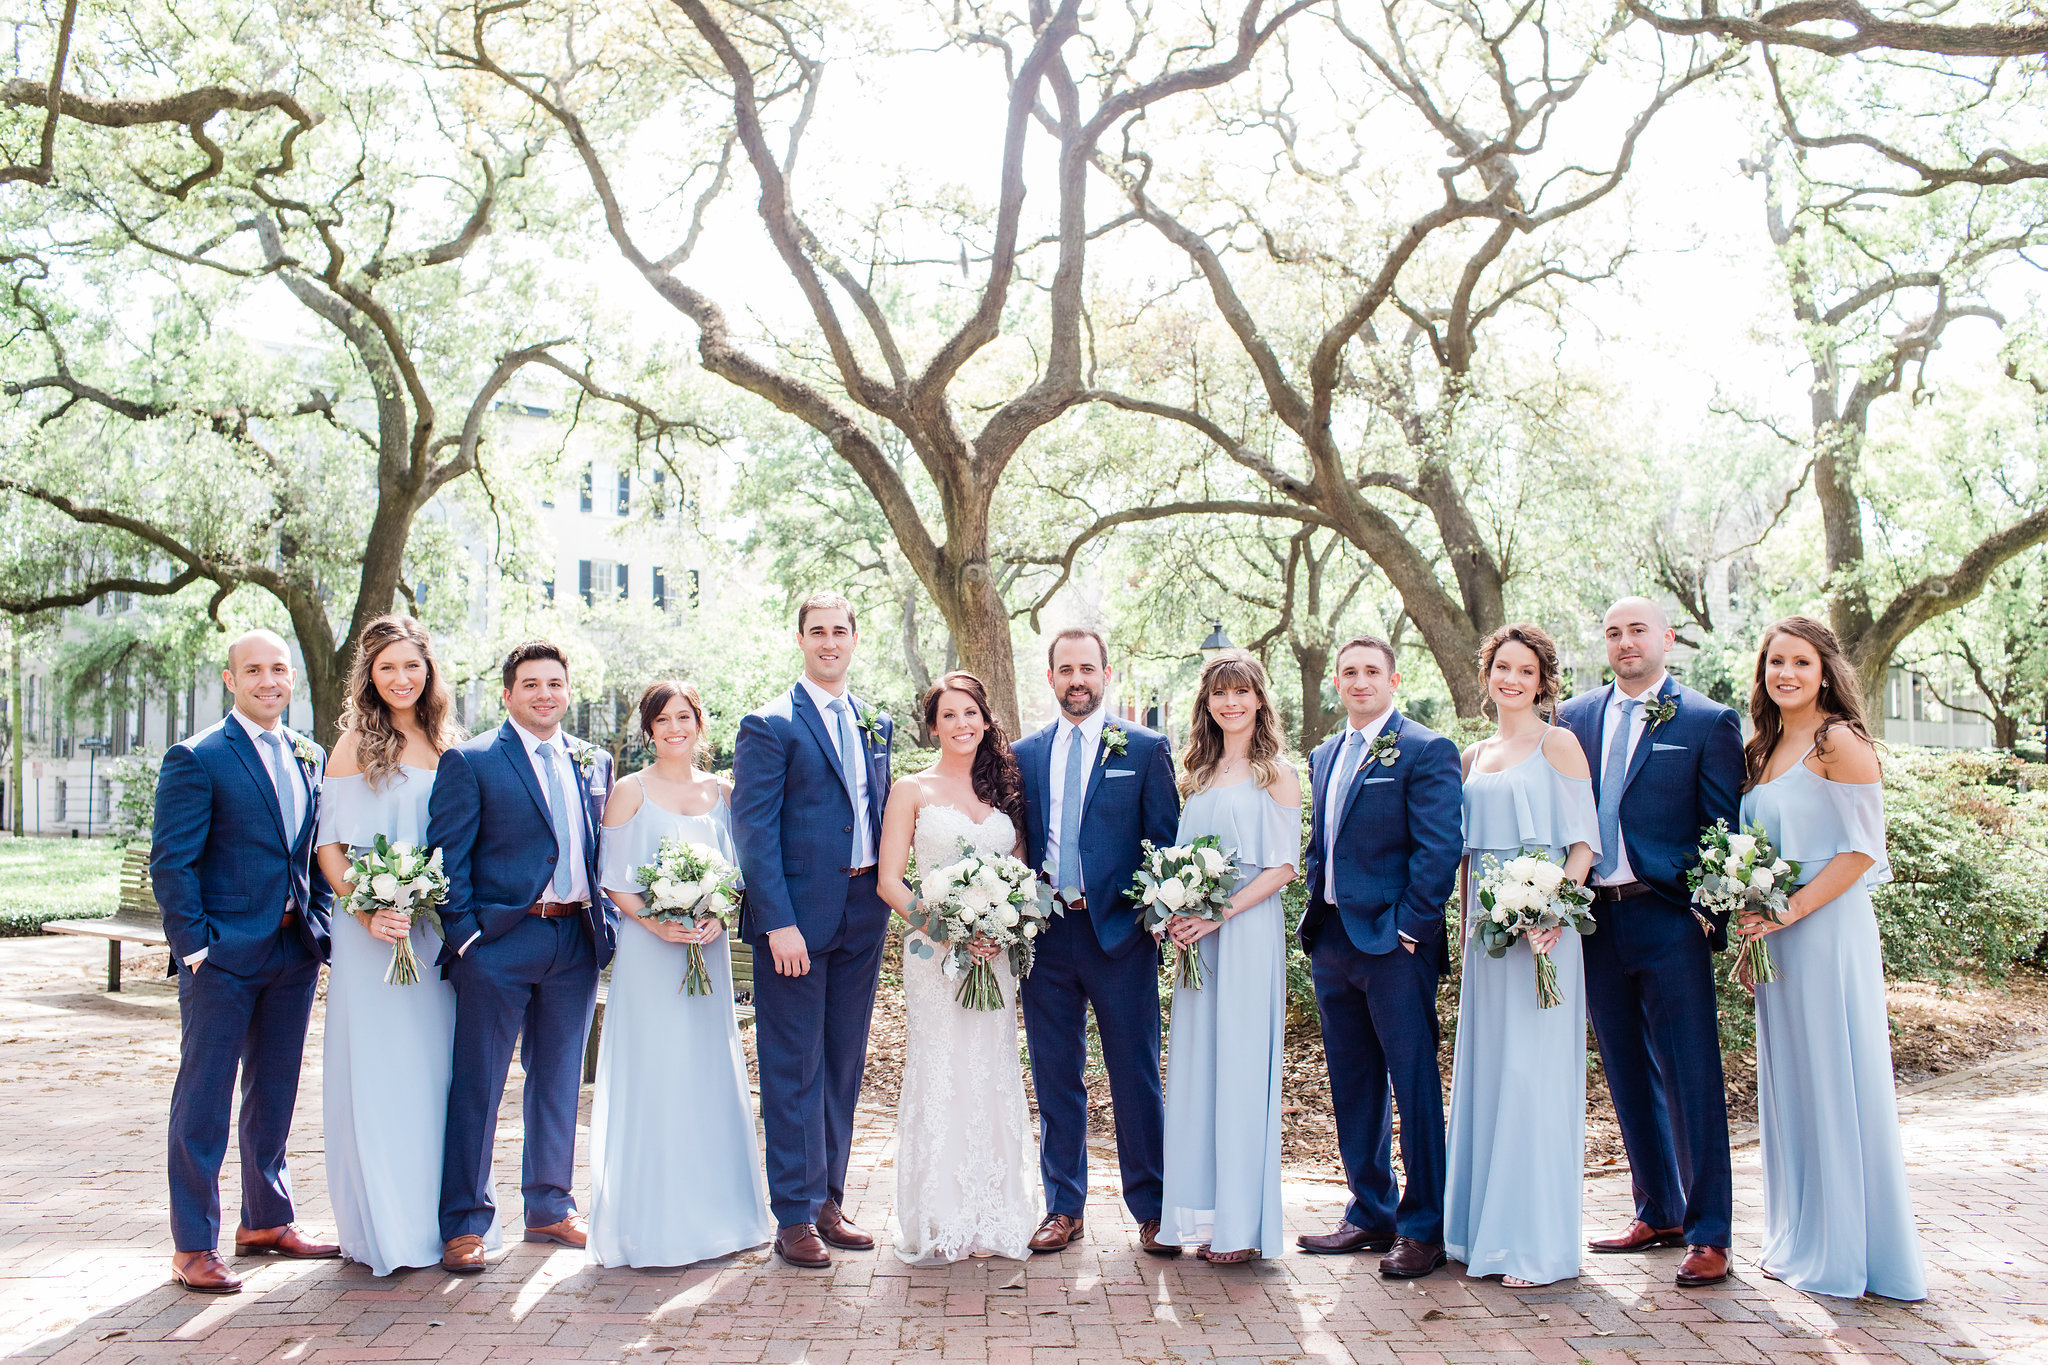 Michelle + Scott - Intimate Savannah Wedding at Soho South Cafe, soft blue bridesmaids dresses | Apt. B Photography